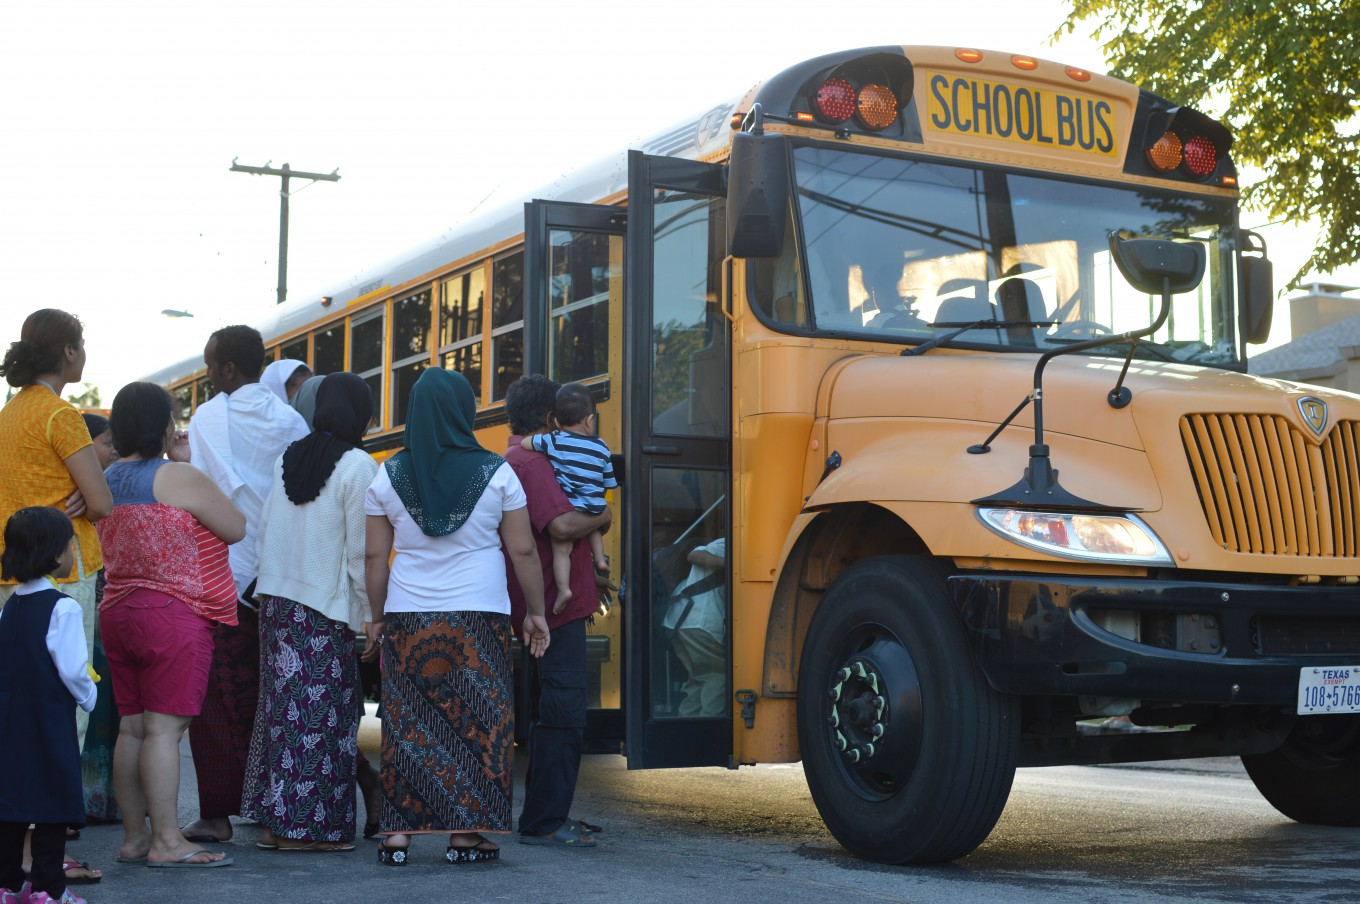 Kids and parents in Vickery Meadow in Dallas get ready for the first day of school. Photo/Christina Ulsh